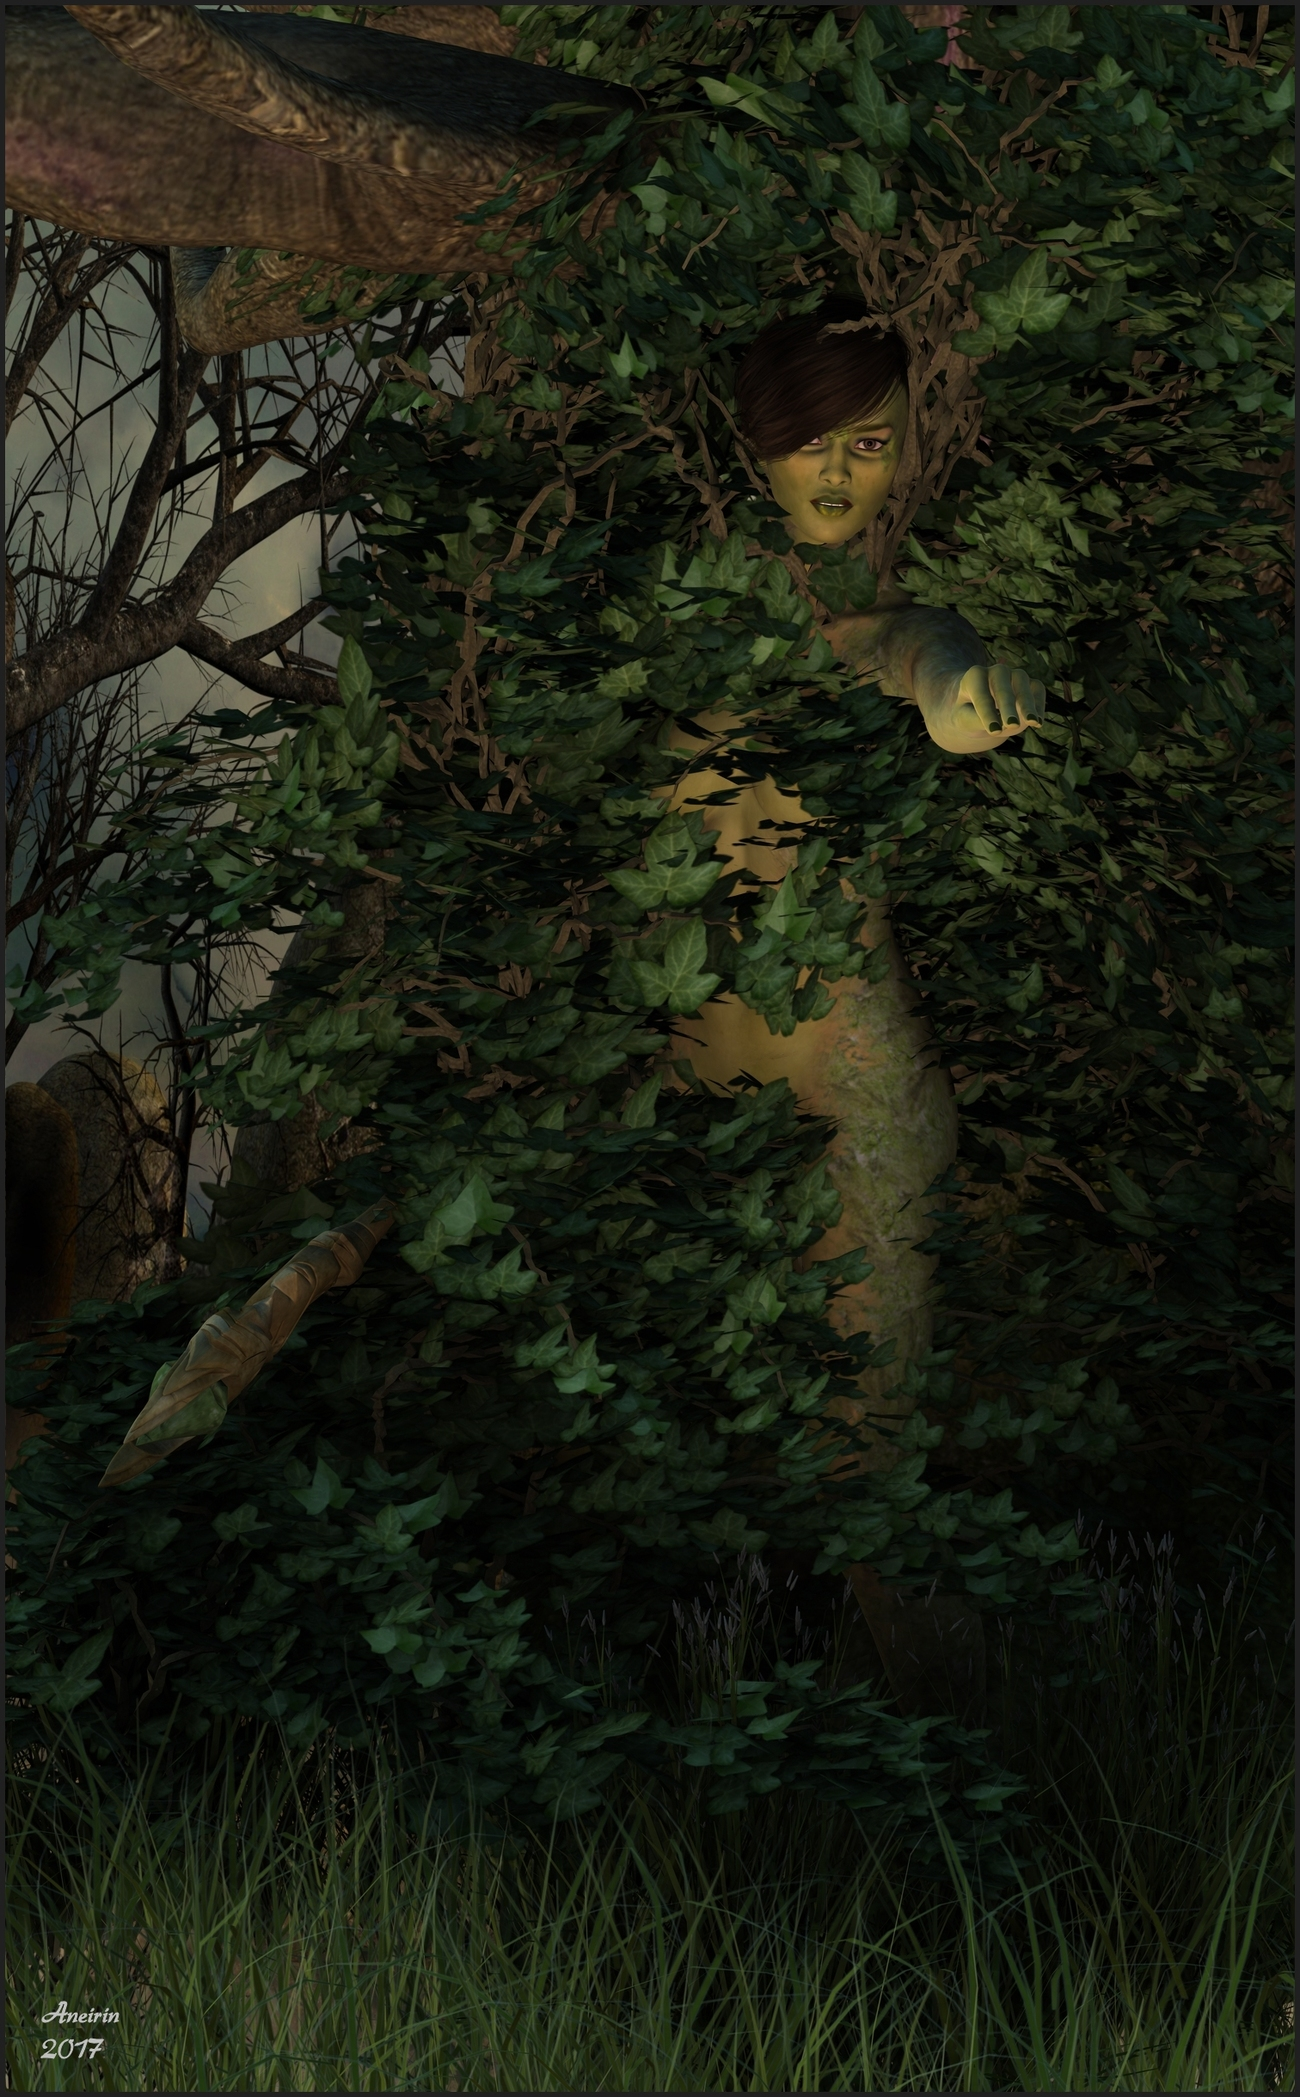 The Ent-Woman